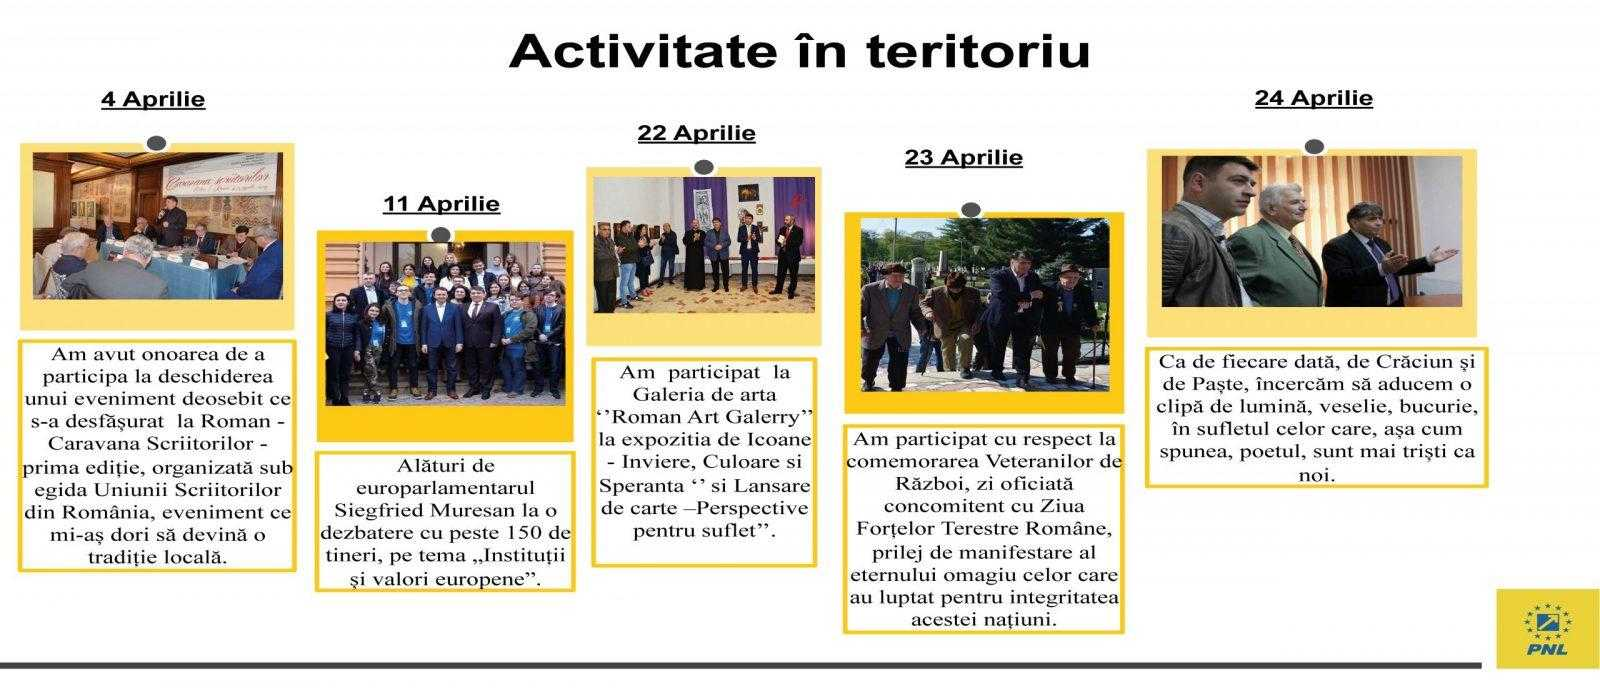 raport de activitate laurentiu leoreanu Page 32 scaled